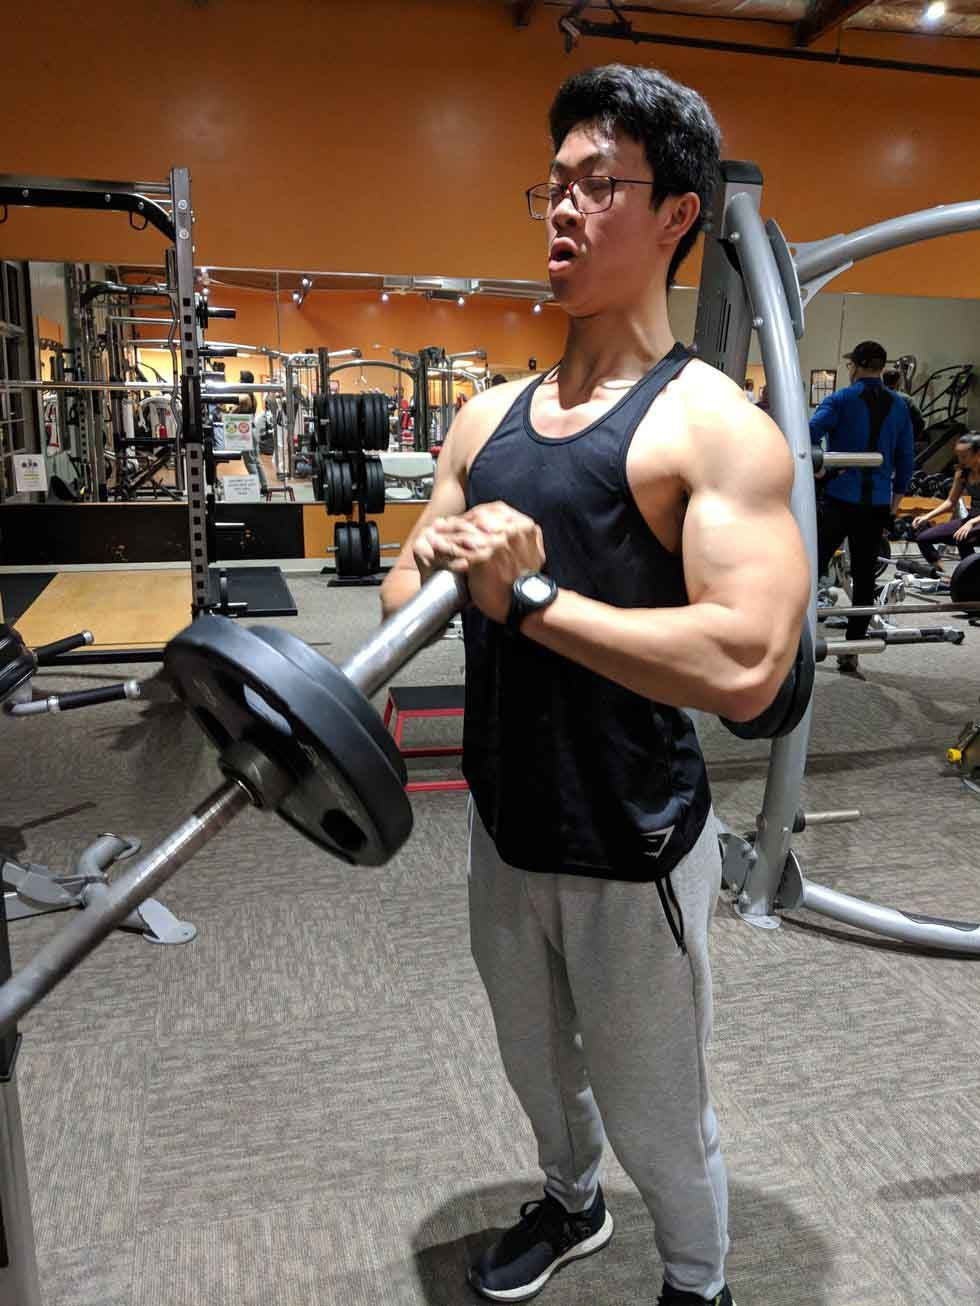 He Was Teased for Being Skinny — So He Gained 35 Lbs. of Muscle